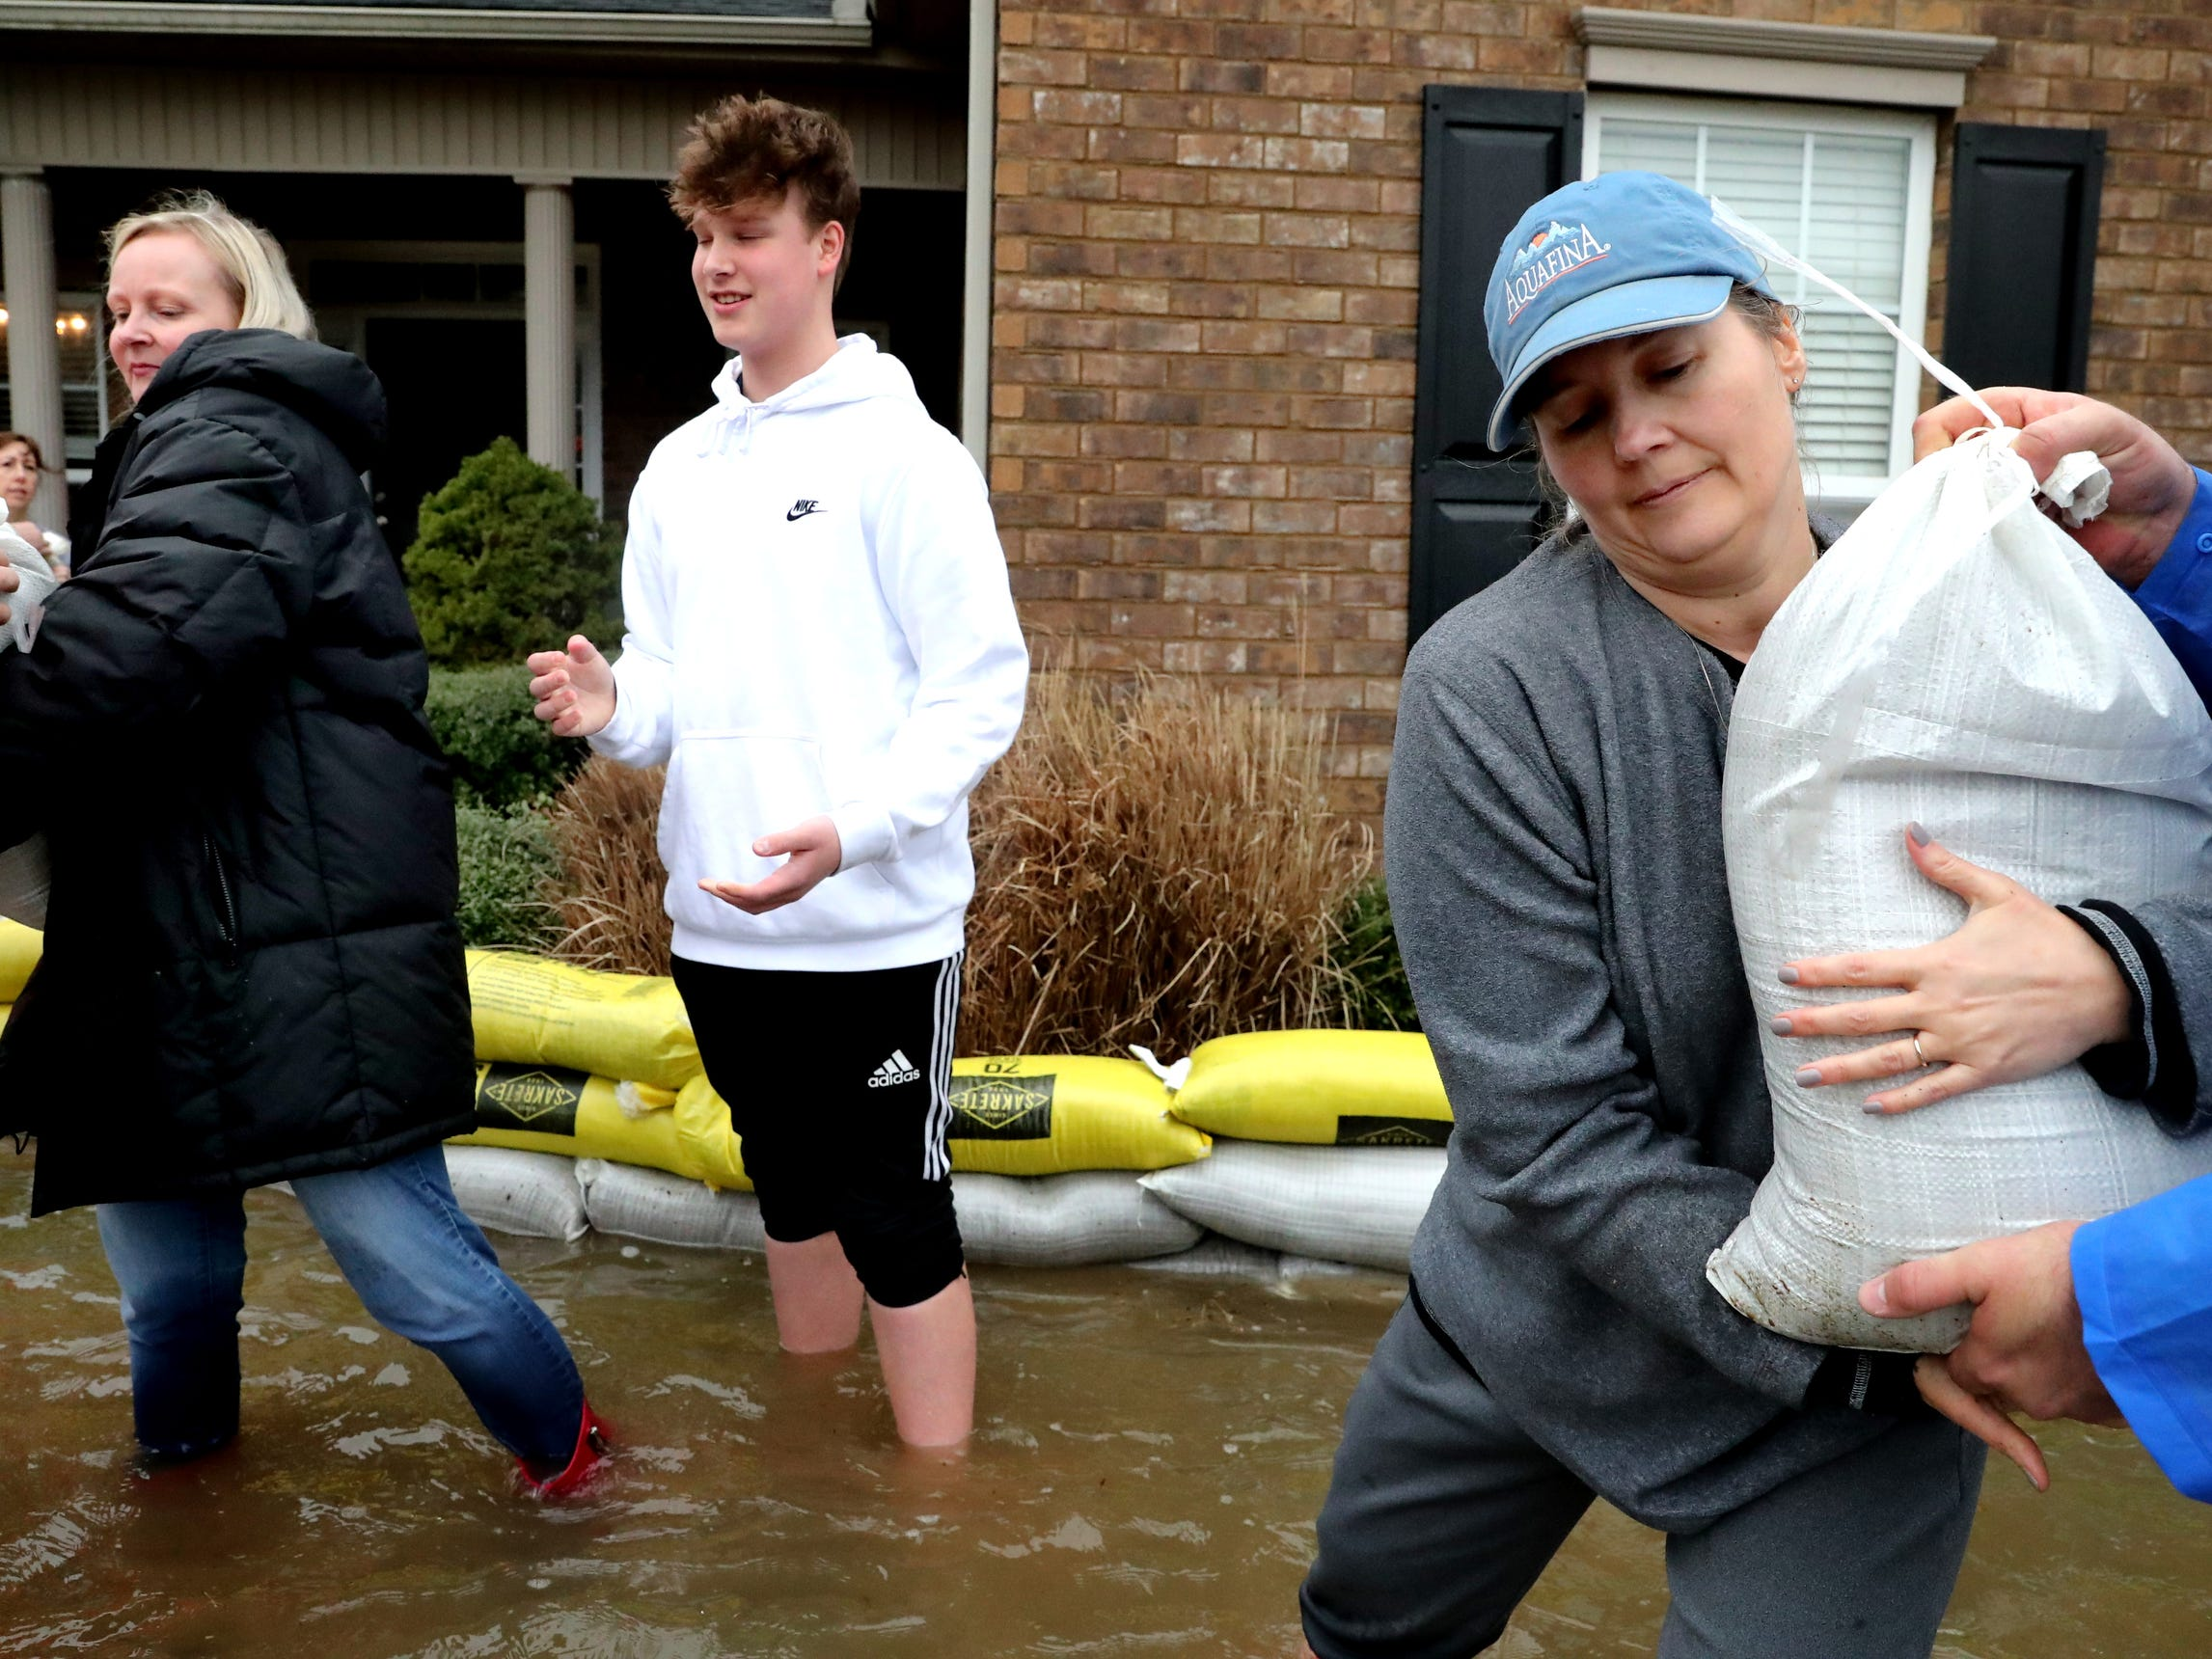 Teresa Garrison helps neighbors with sand bags during flooding in Murfreesboro on Saturday, Feb. 23, 2019.